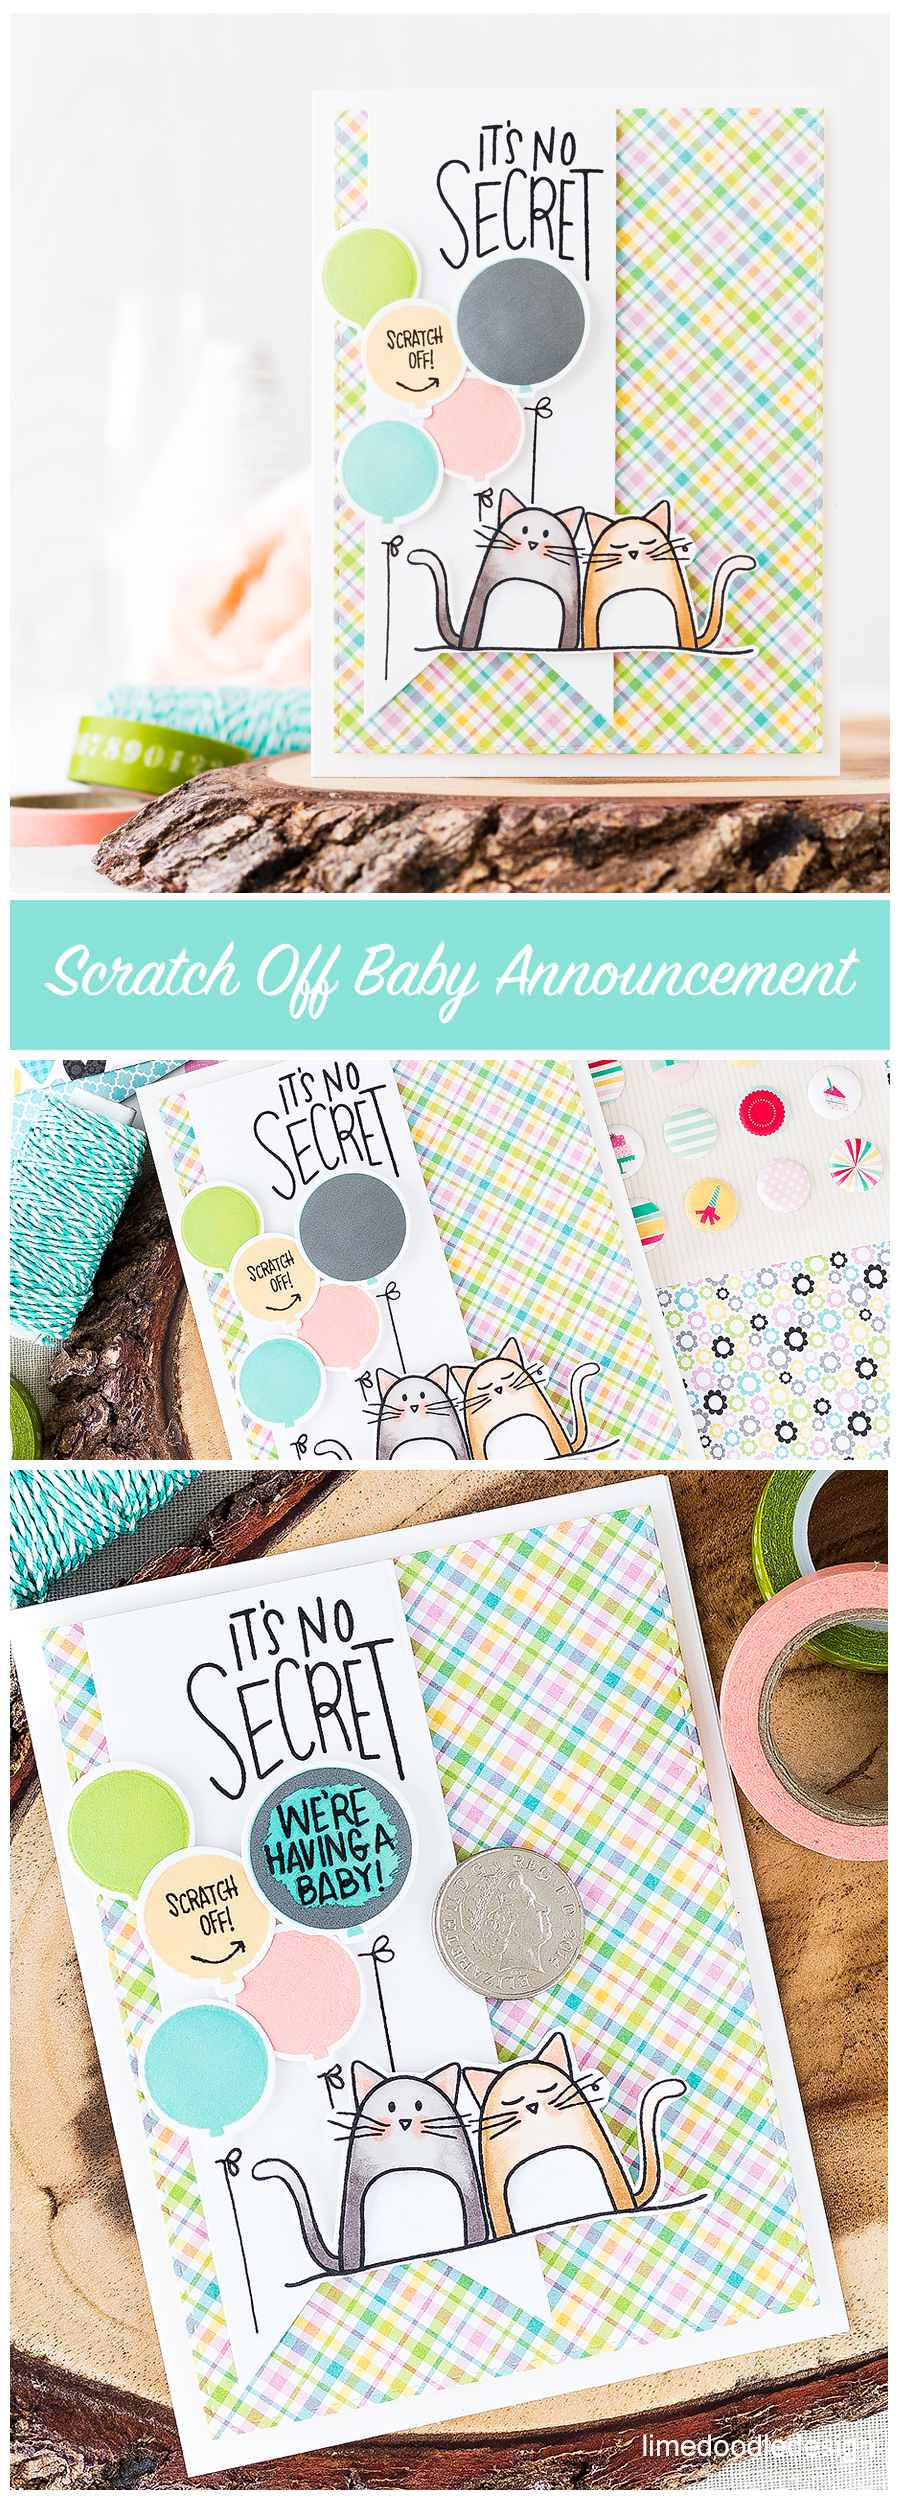 Baby announcement scratch off card. Find out more by clicking on the following link: http://limedoodledesign.com/2016/08/baby-announcement-my-first-scratch-off-card/